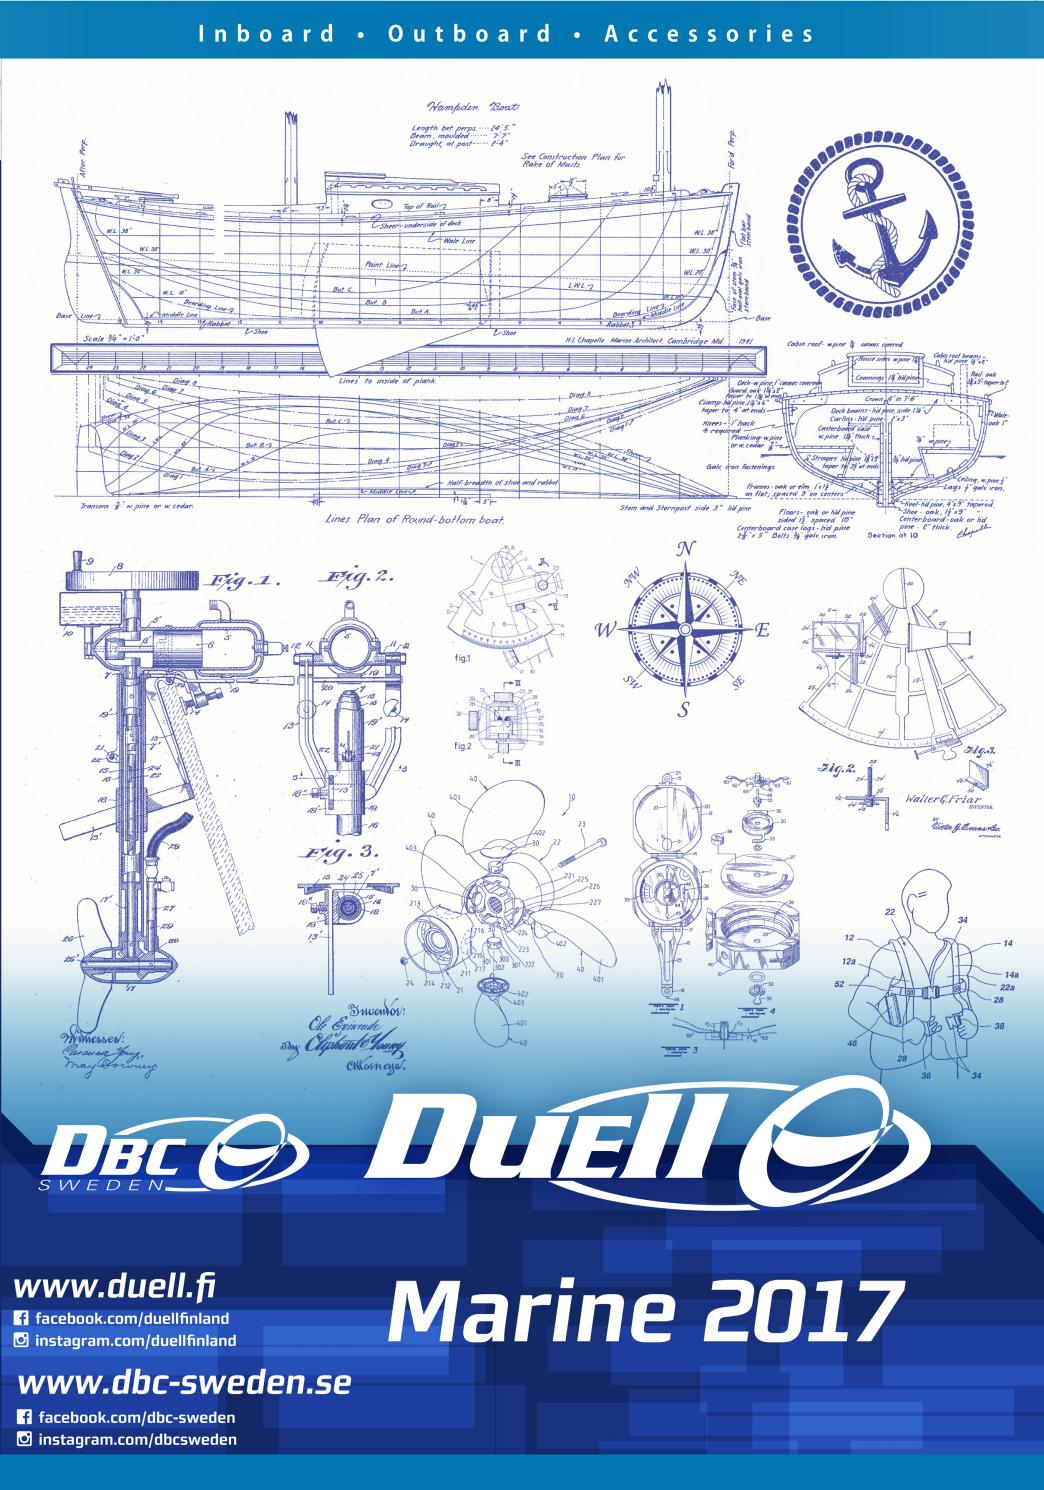 Duell Marine 2013 Kuvasto By Bike Center Oy Issuu 1w3w Leds Smd 35351 Pc